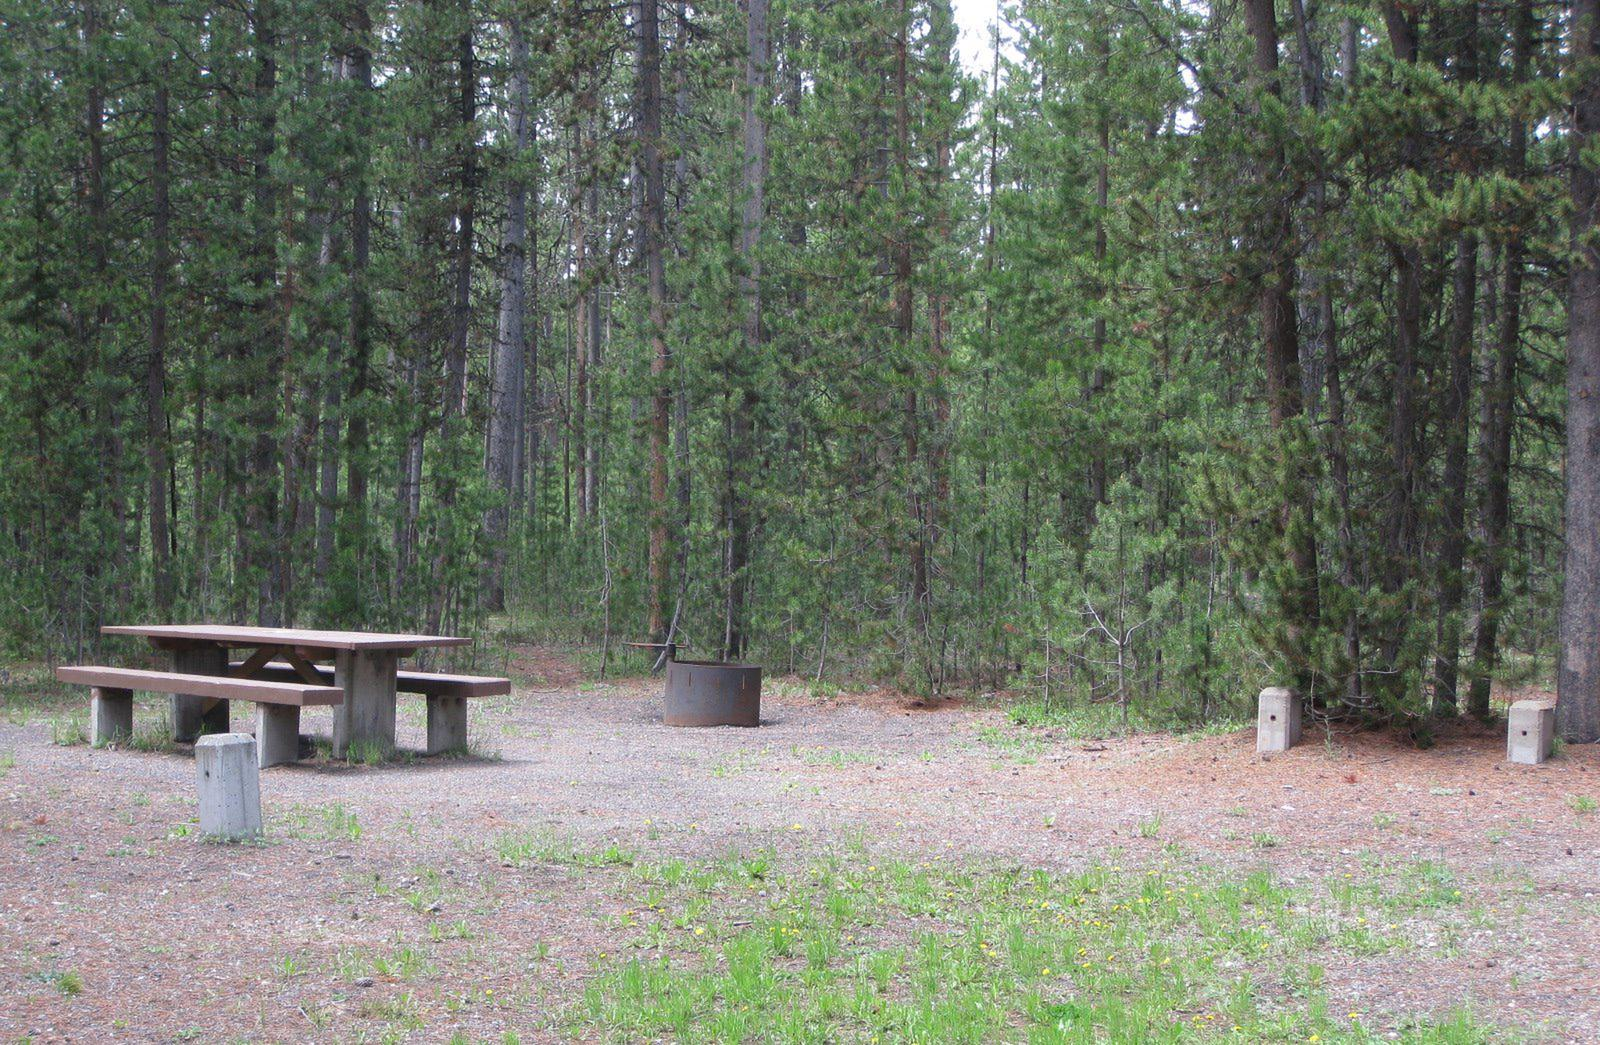 Site D7, surrounded by pine trees, picnic table & fire ringSite D7